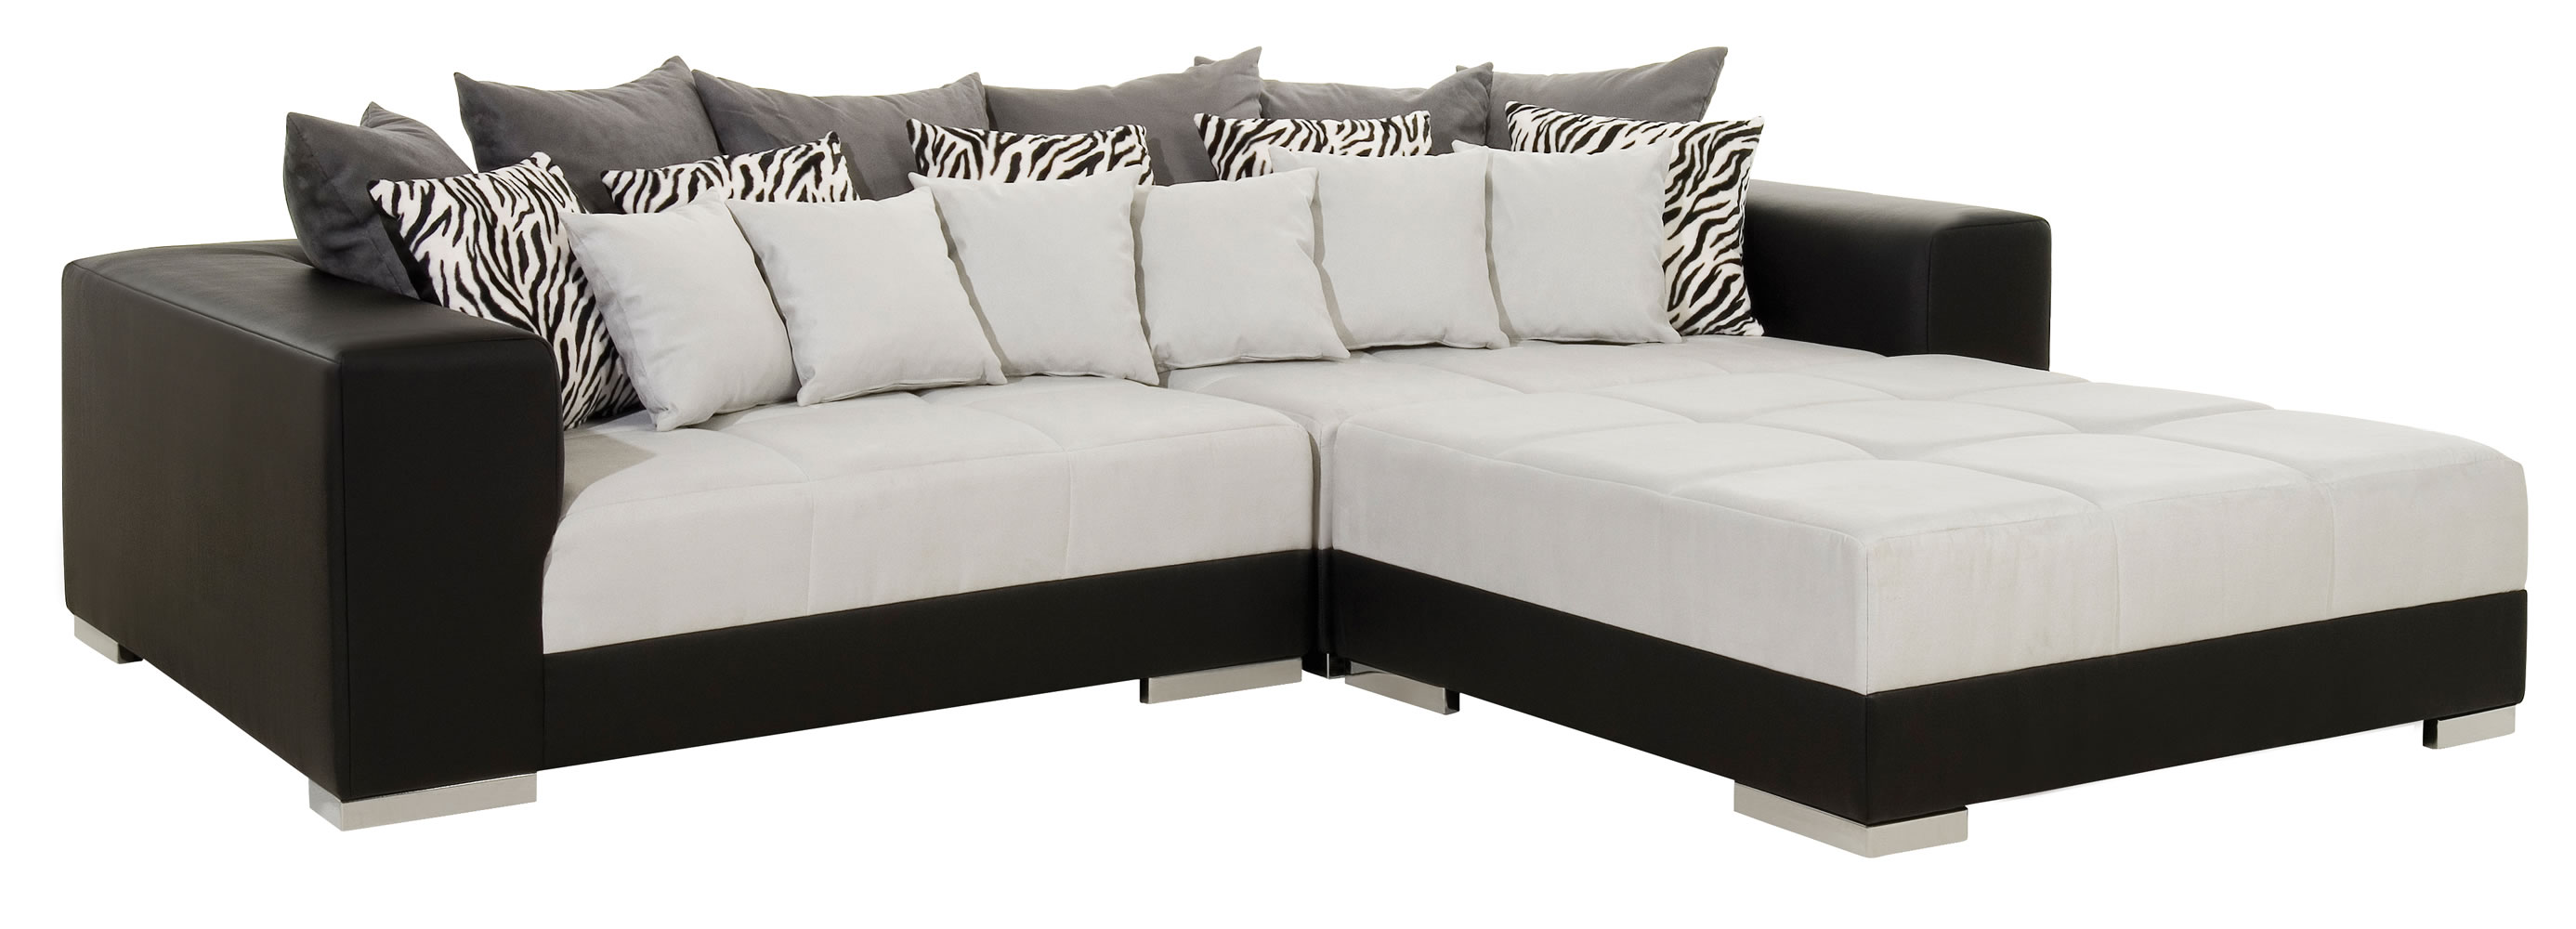 Black and white sectional Sofas